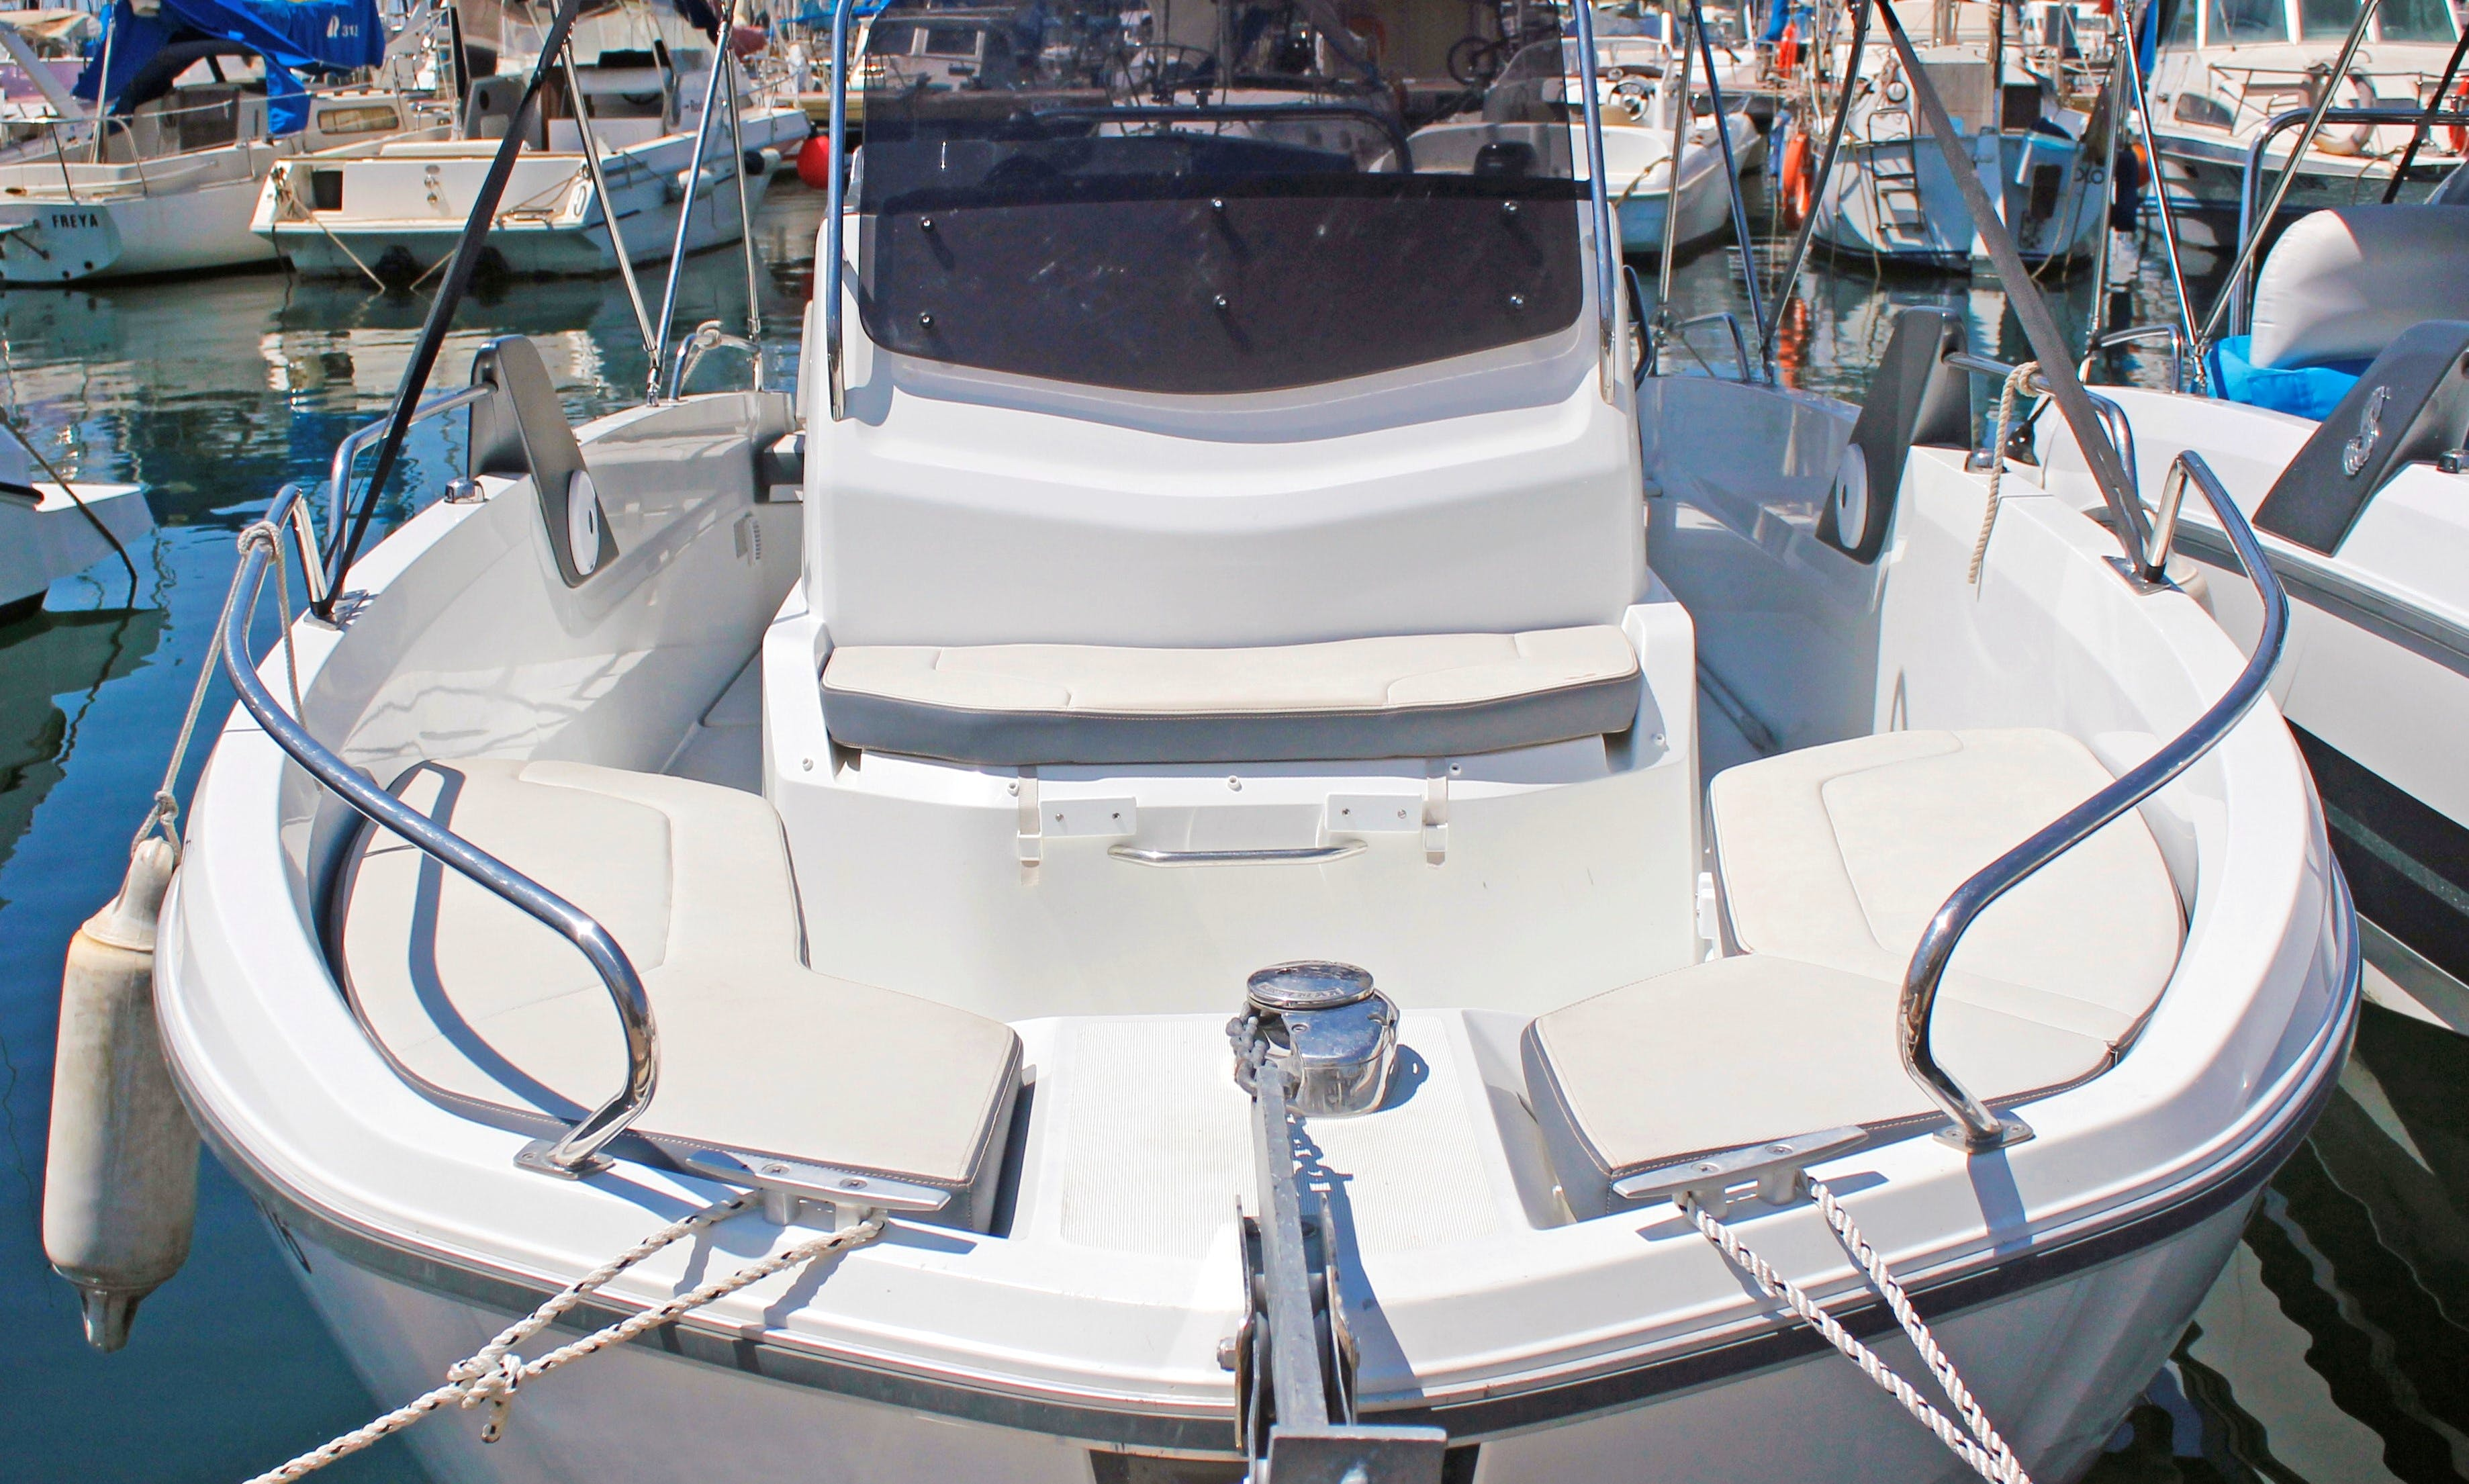 Rent 2016 Beneteau Flyer 6.6 Spacedeck in L'estartit, Costa Brava